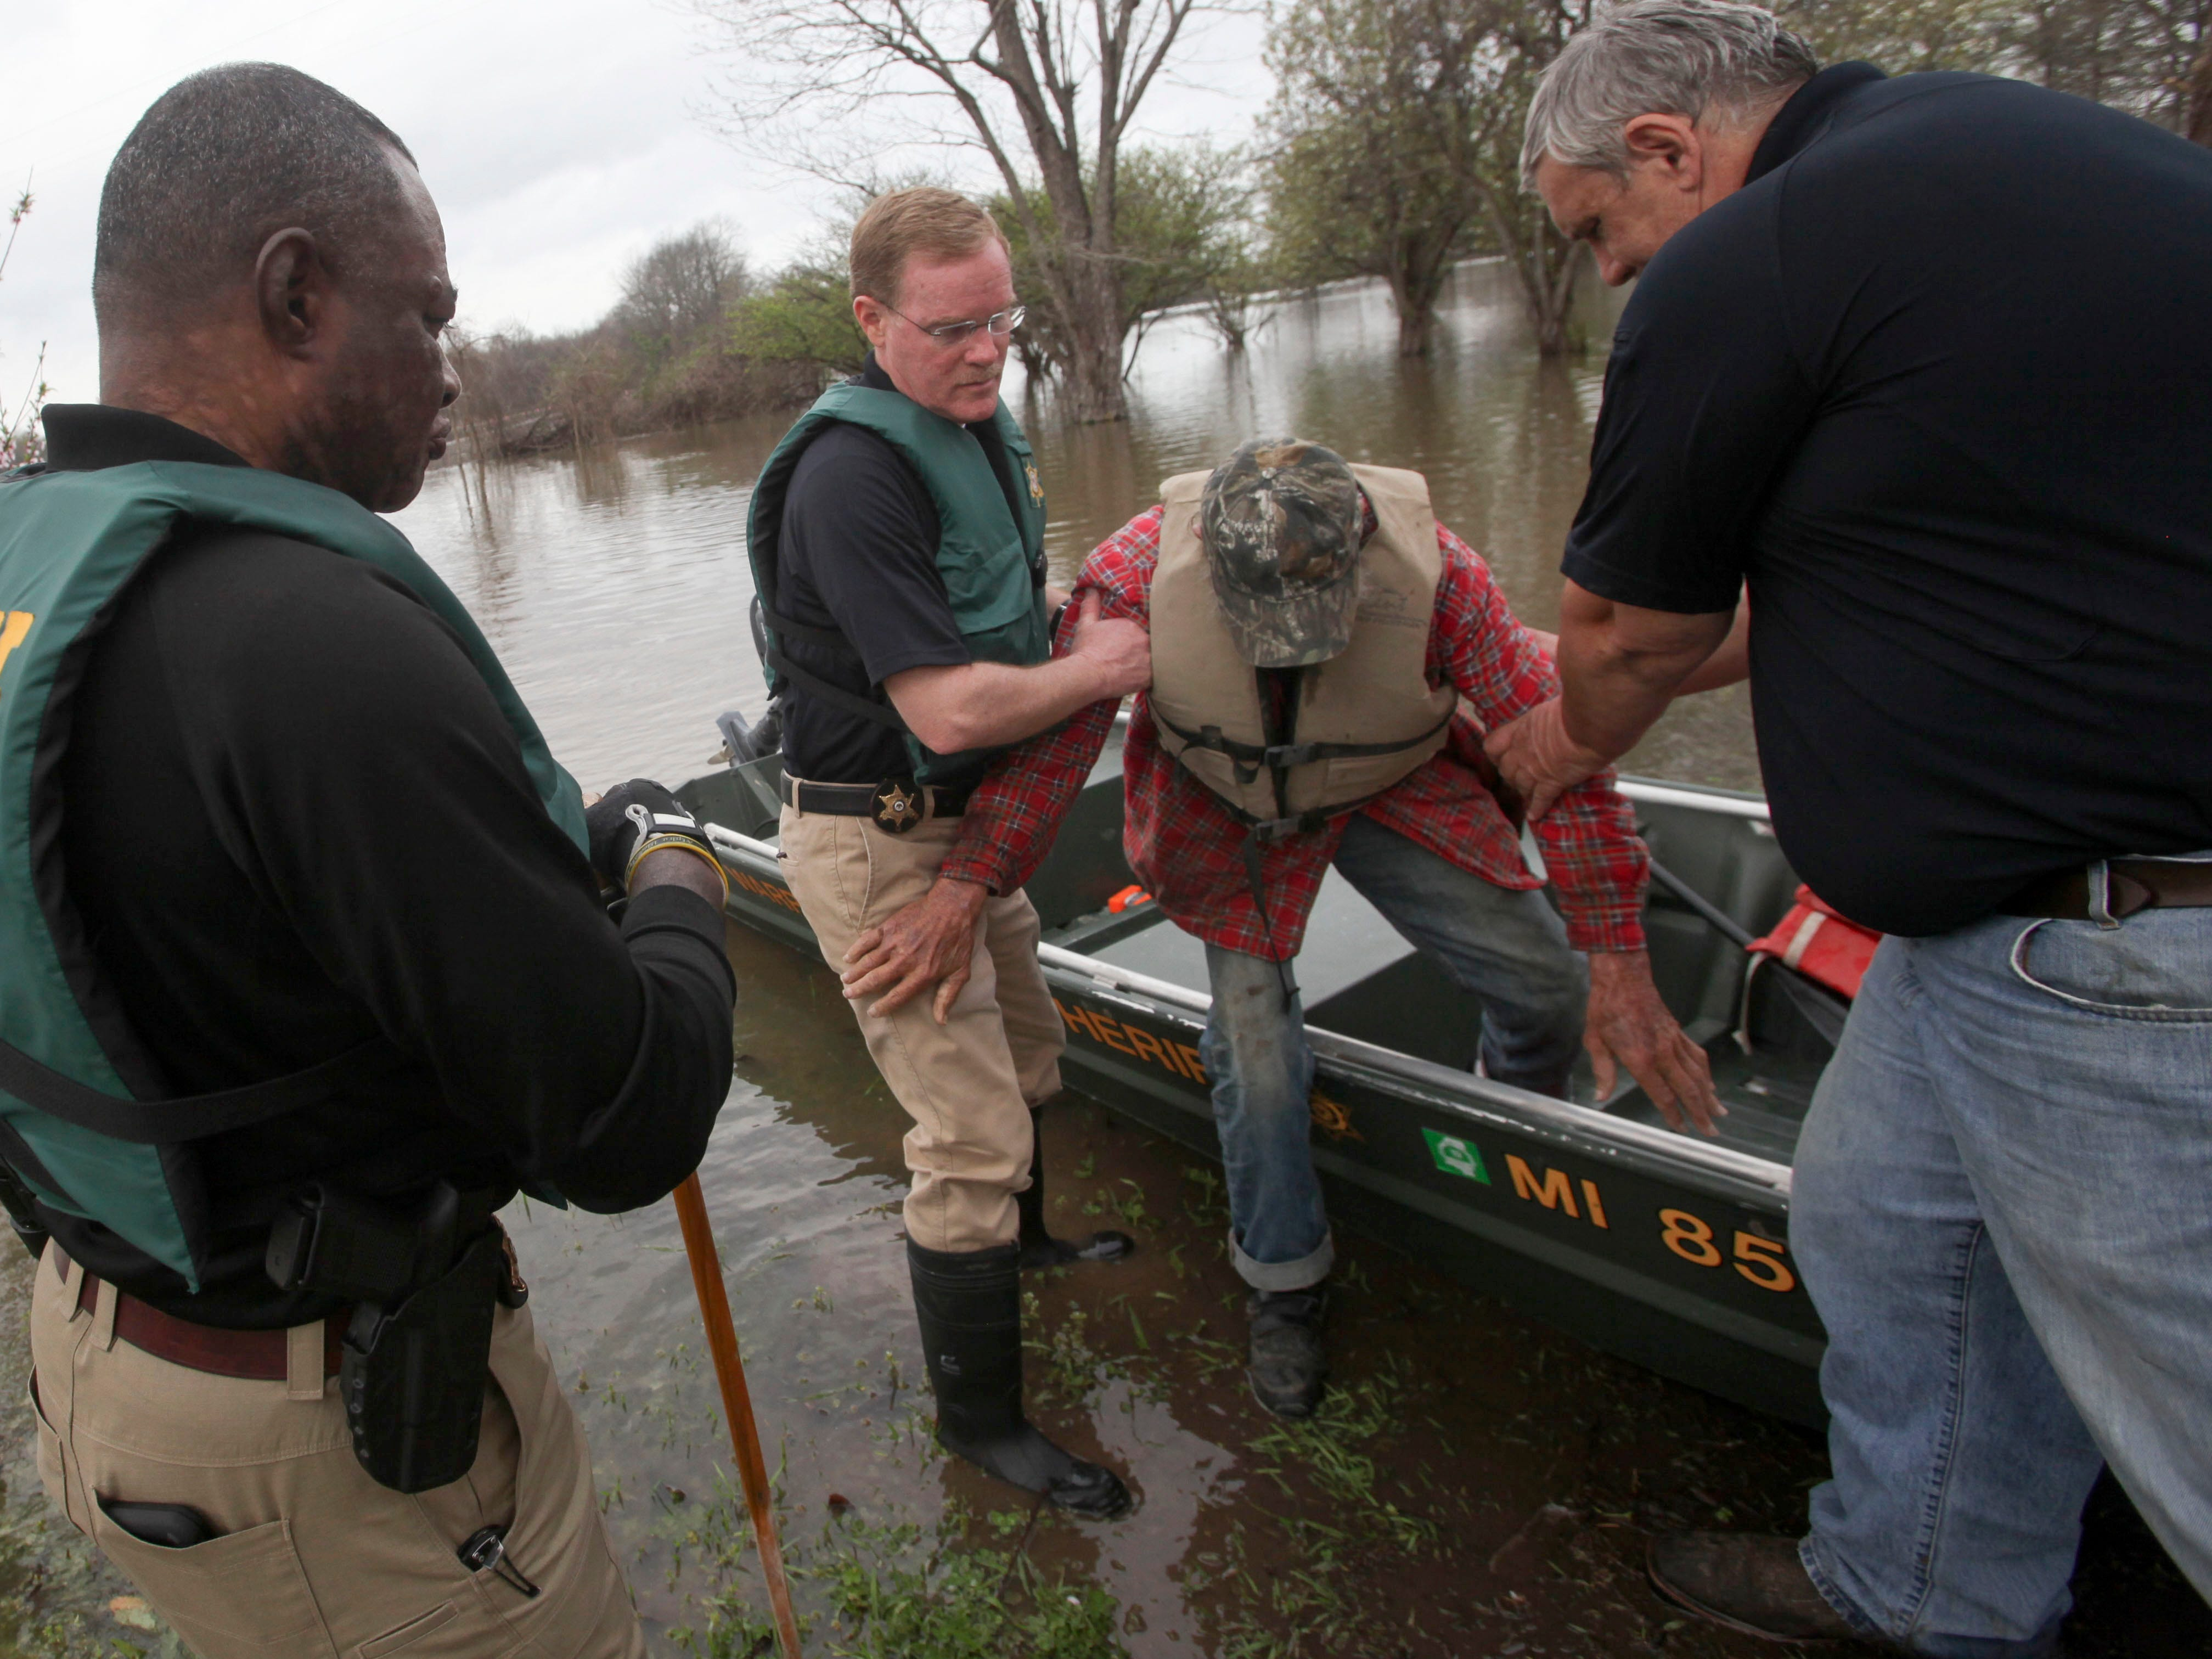 Warren County Sheriff Martin Pace and Reed Birdsong with Warren County Emergency Management help a man from a boat after assisting him with evacuating from his home that is inundated with floodwater off of Floweree Road in Redwood, Miss., Wednesday, March 13, 2019. Sheriff Pace said they were alerted by neighbors that there was a man alone and found his home surrounded by several feet of water with no vehicle or boat.